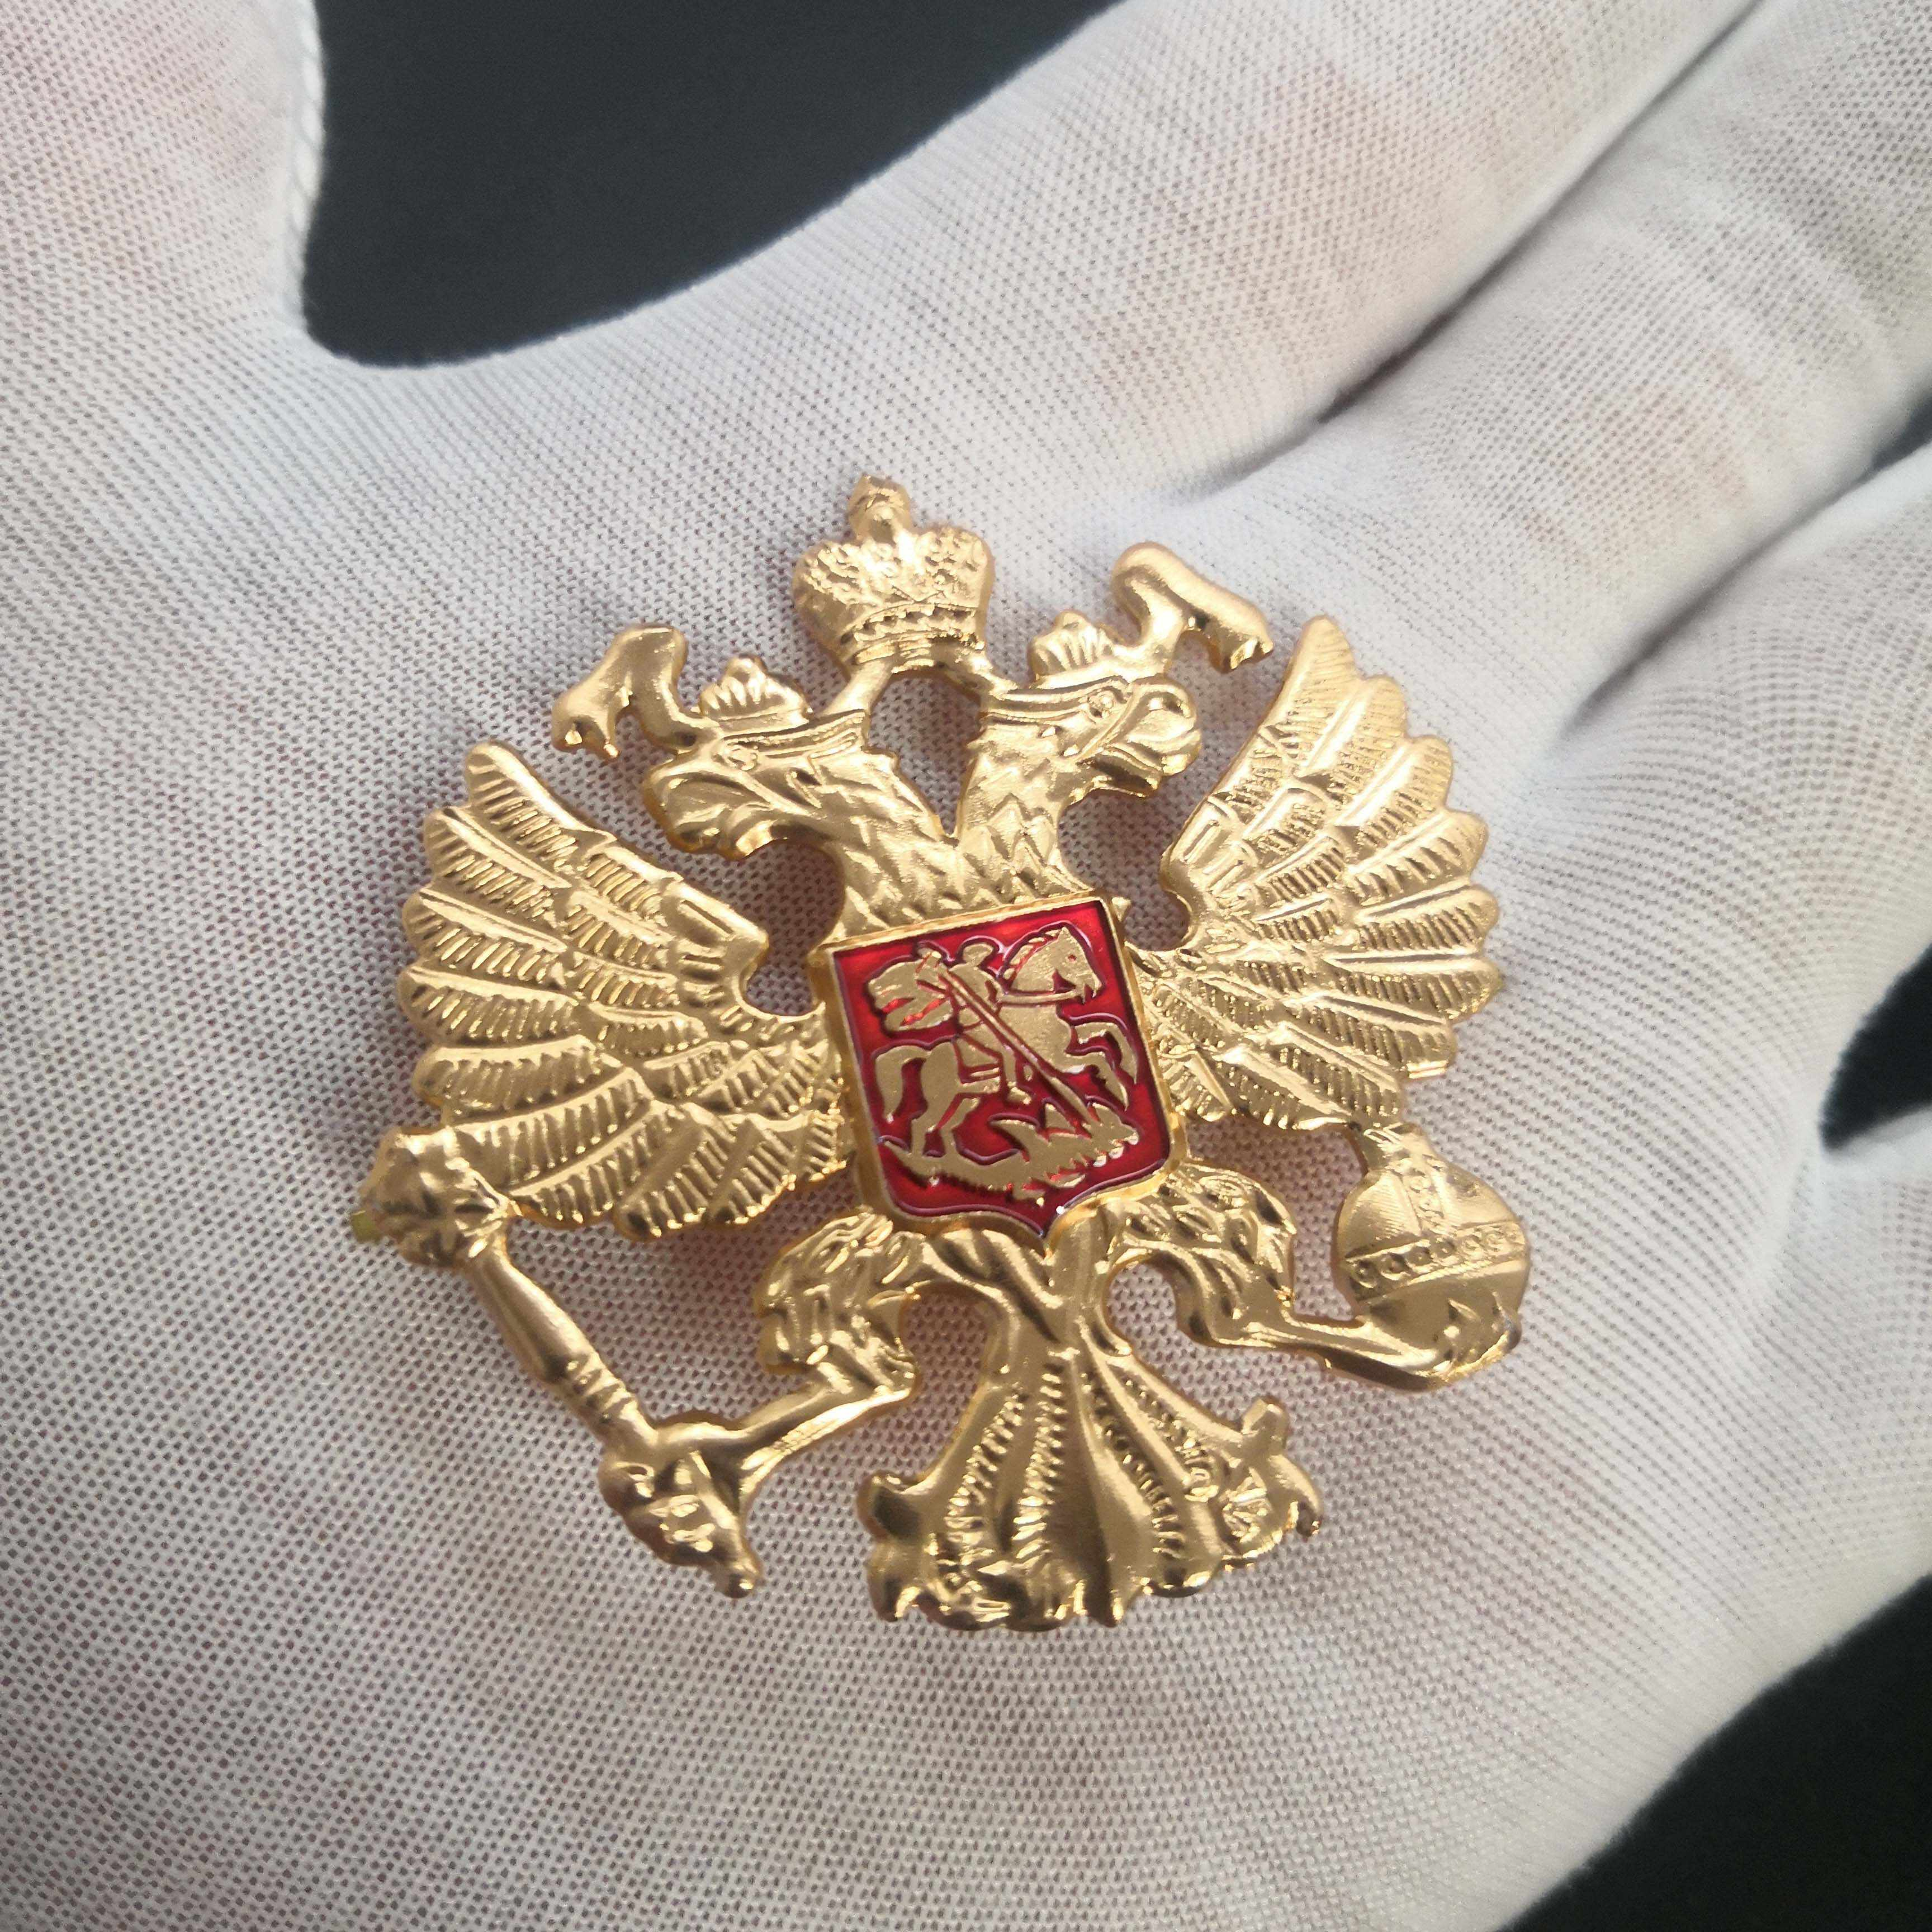 Pro Kitty Medali Rusia Double-Headed Eagle Medali Lambang Nasional Cockatiel Topi Pin Lencana